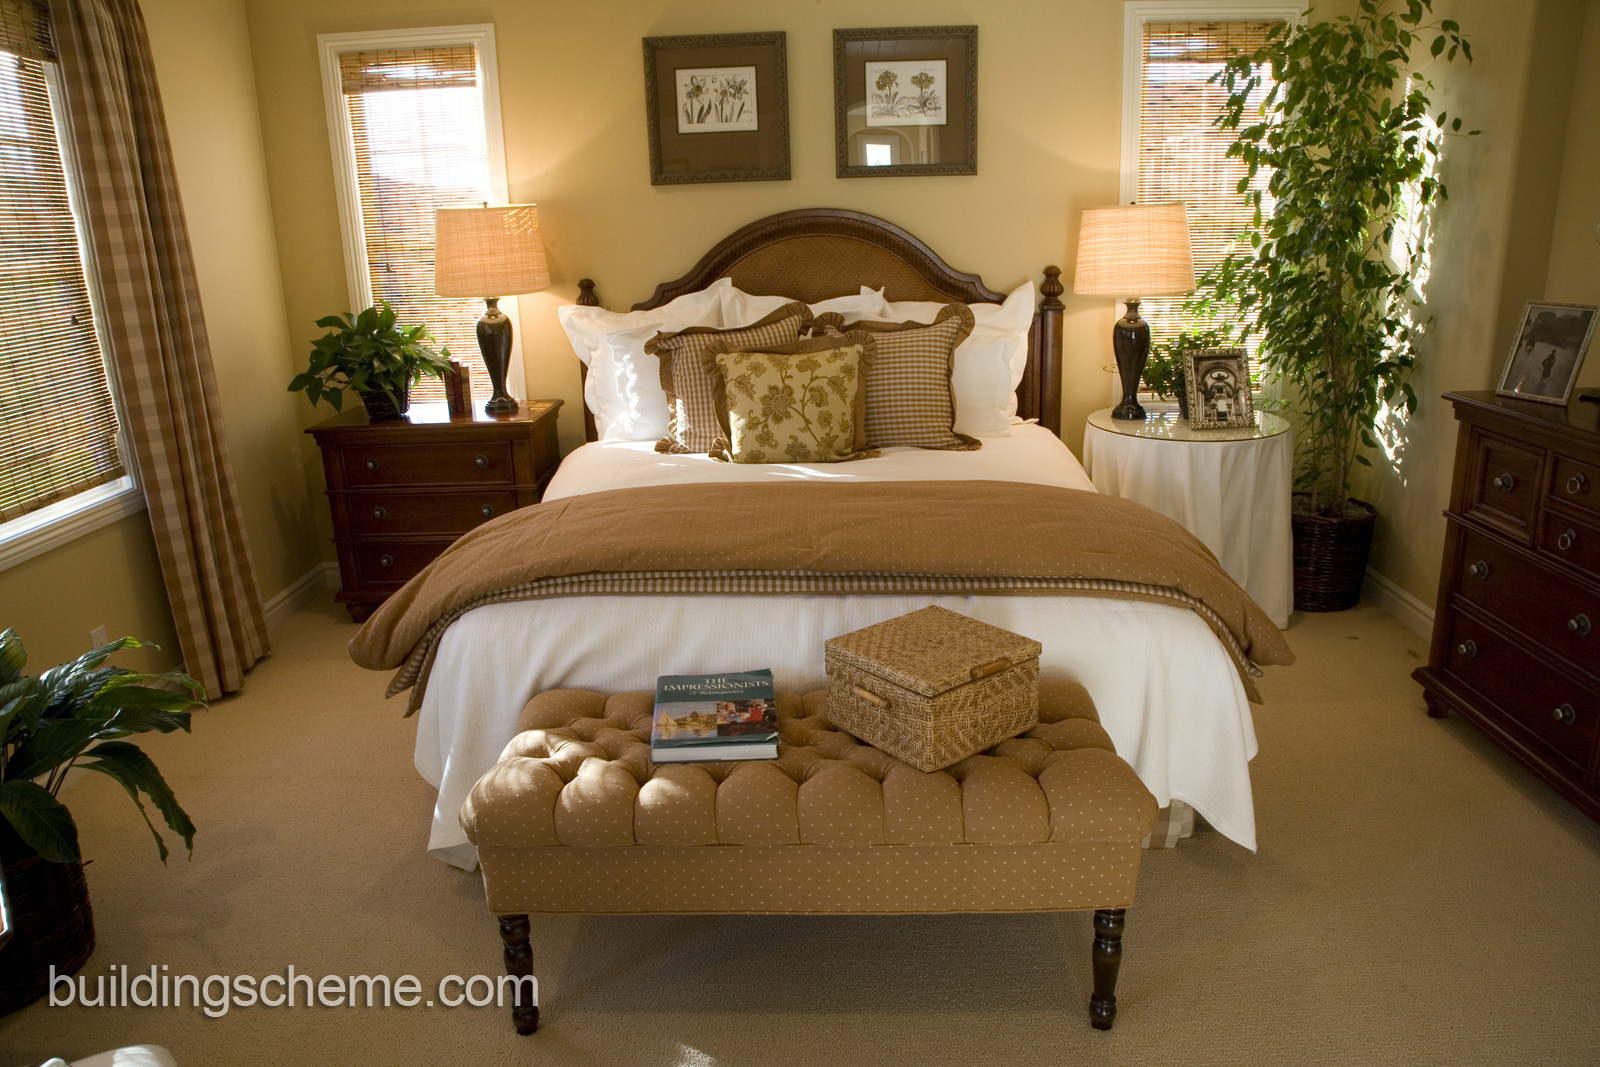 Elegant bedroom ideas decorating 27 decor ideas for How to decorate a bedroom